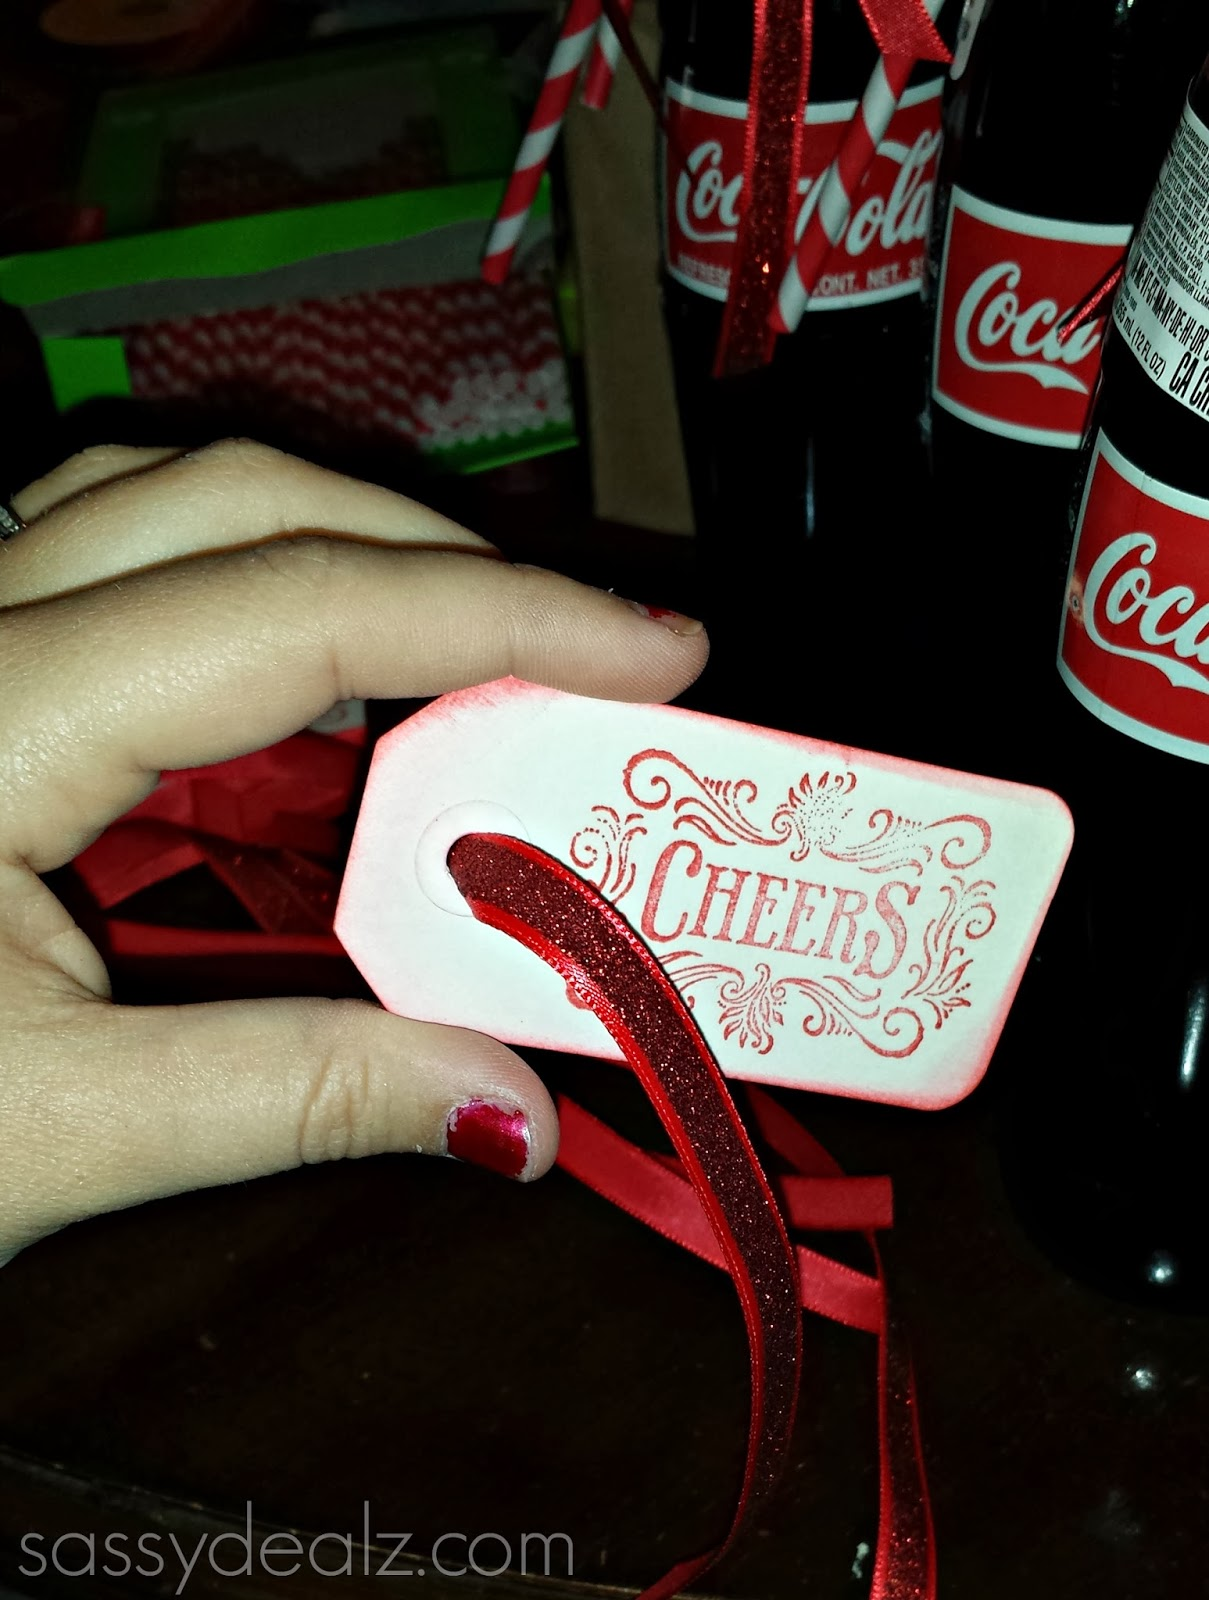 diy coke bottle label wedding favors